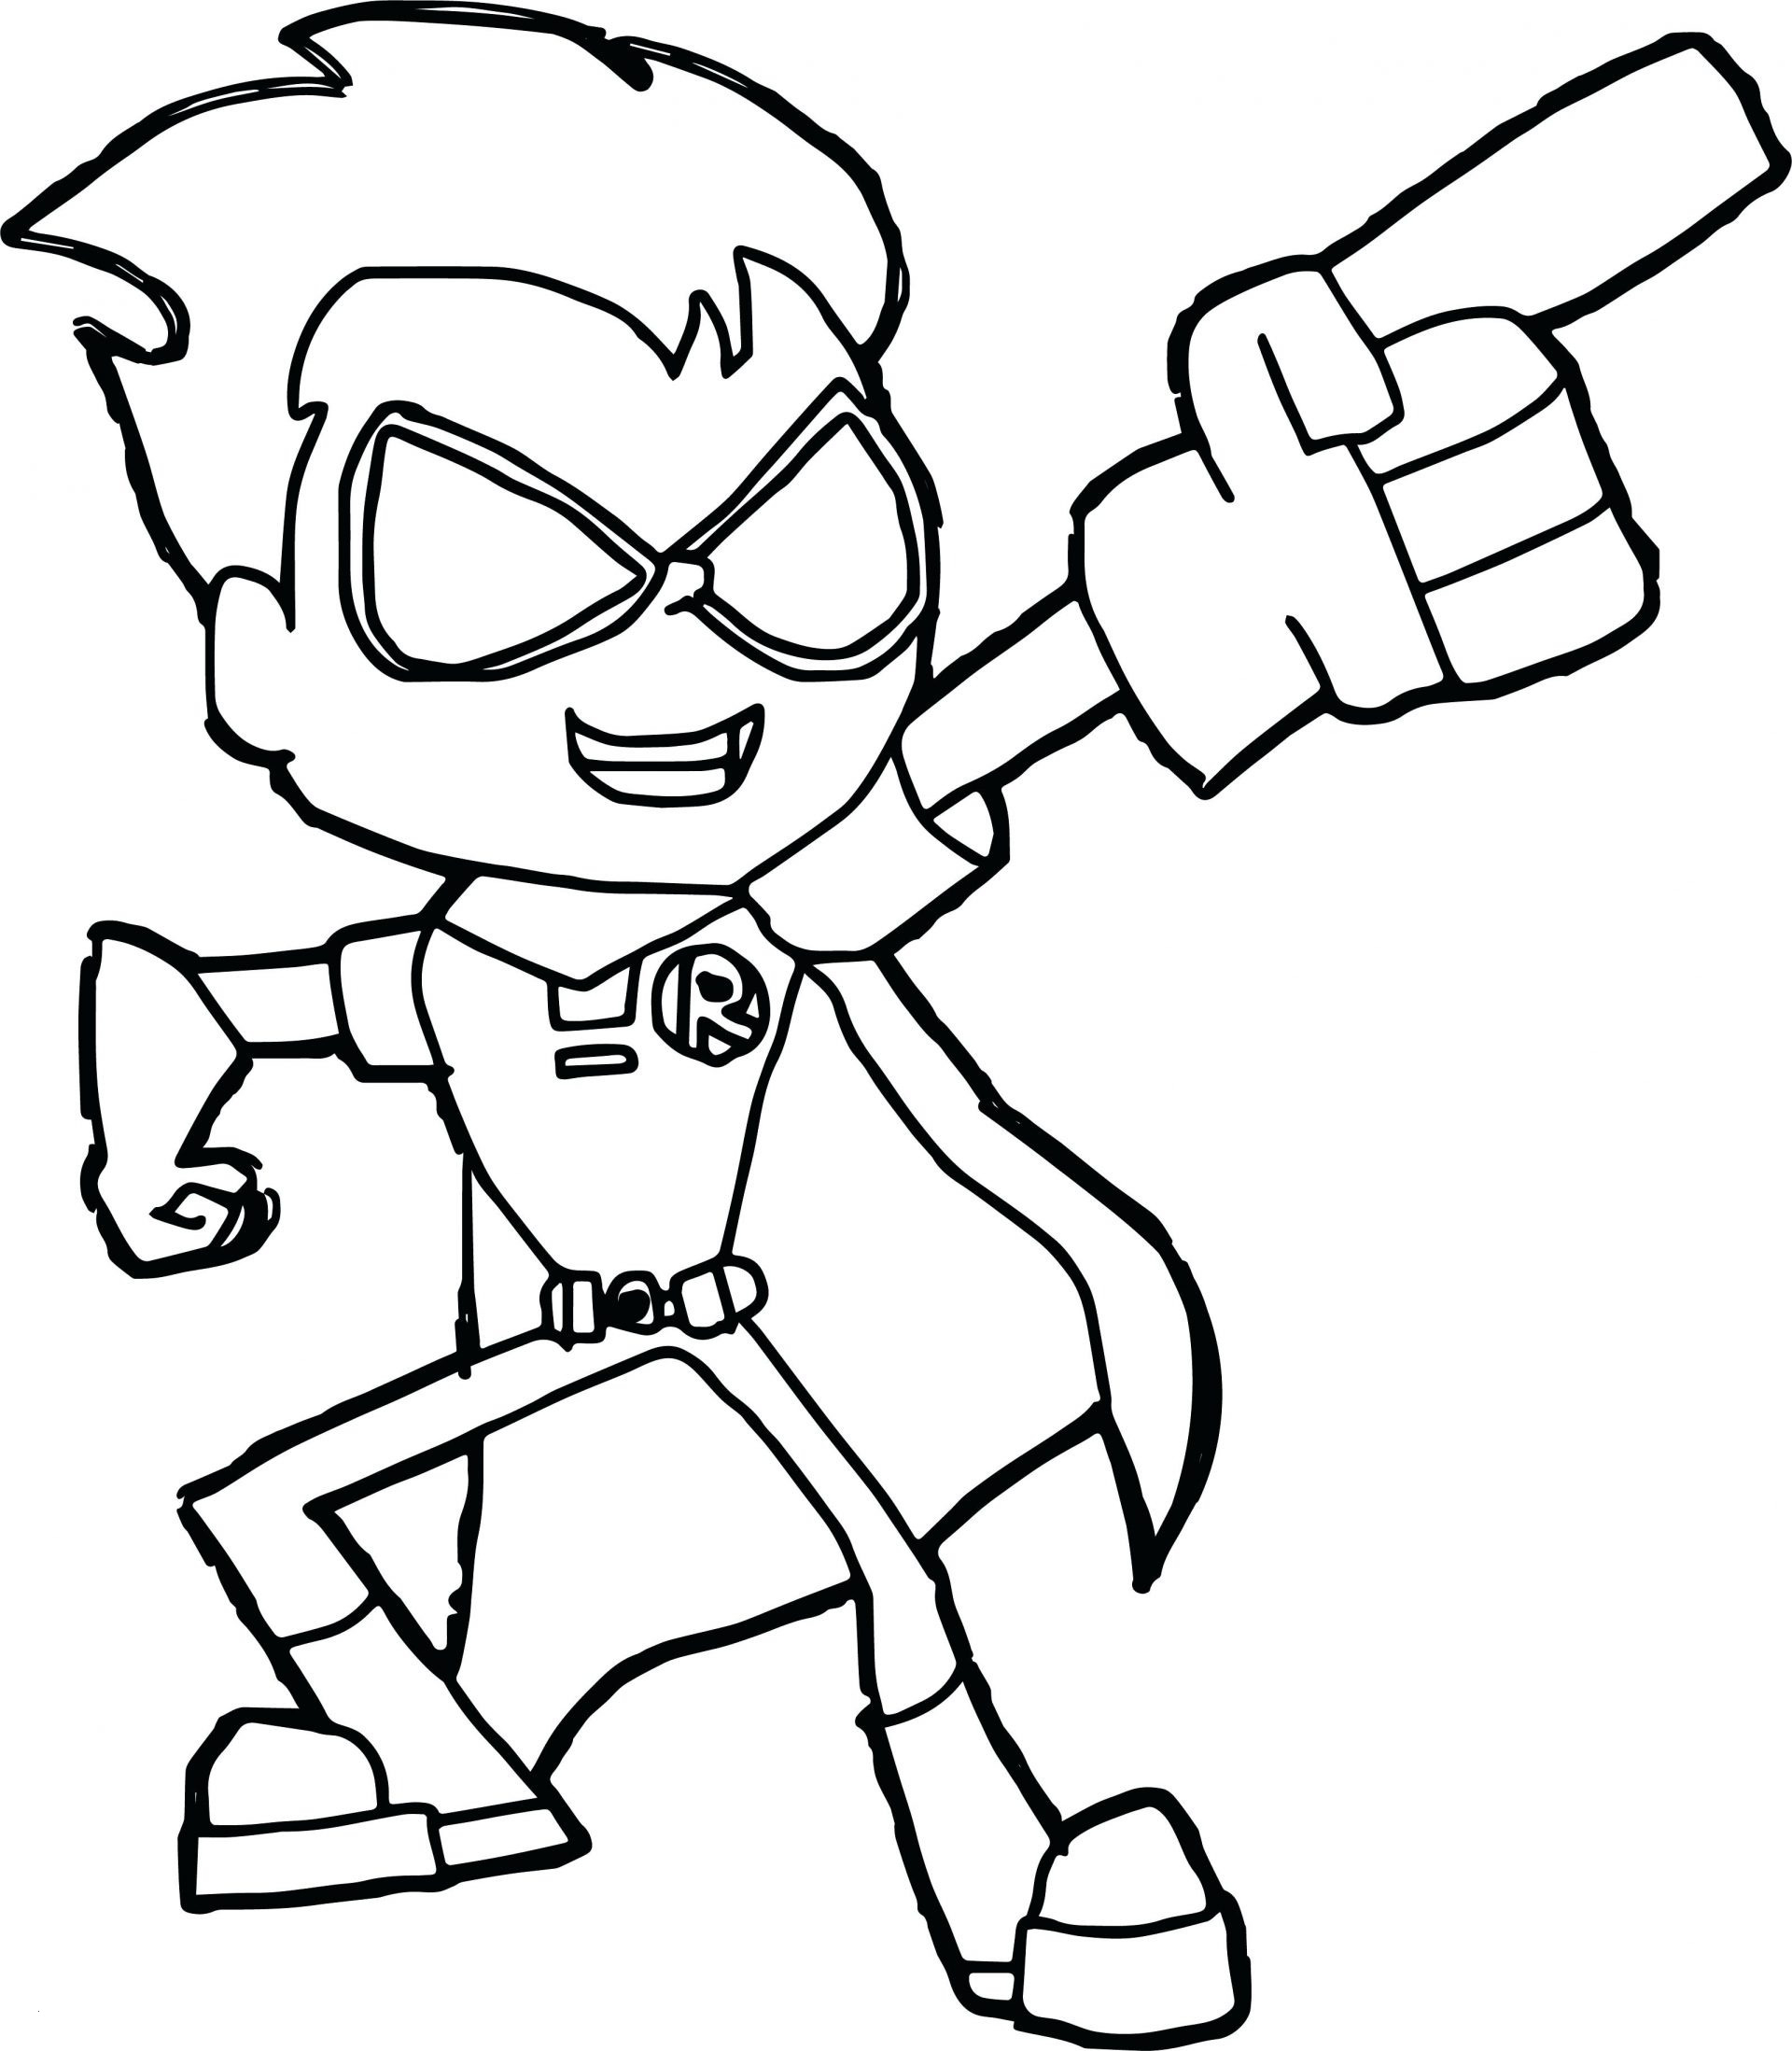 Teen Titans Coloring Pages  Gallery 2s - To print for your project